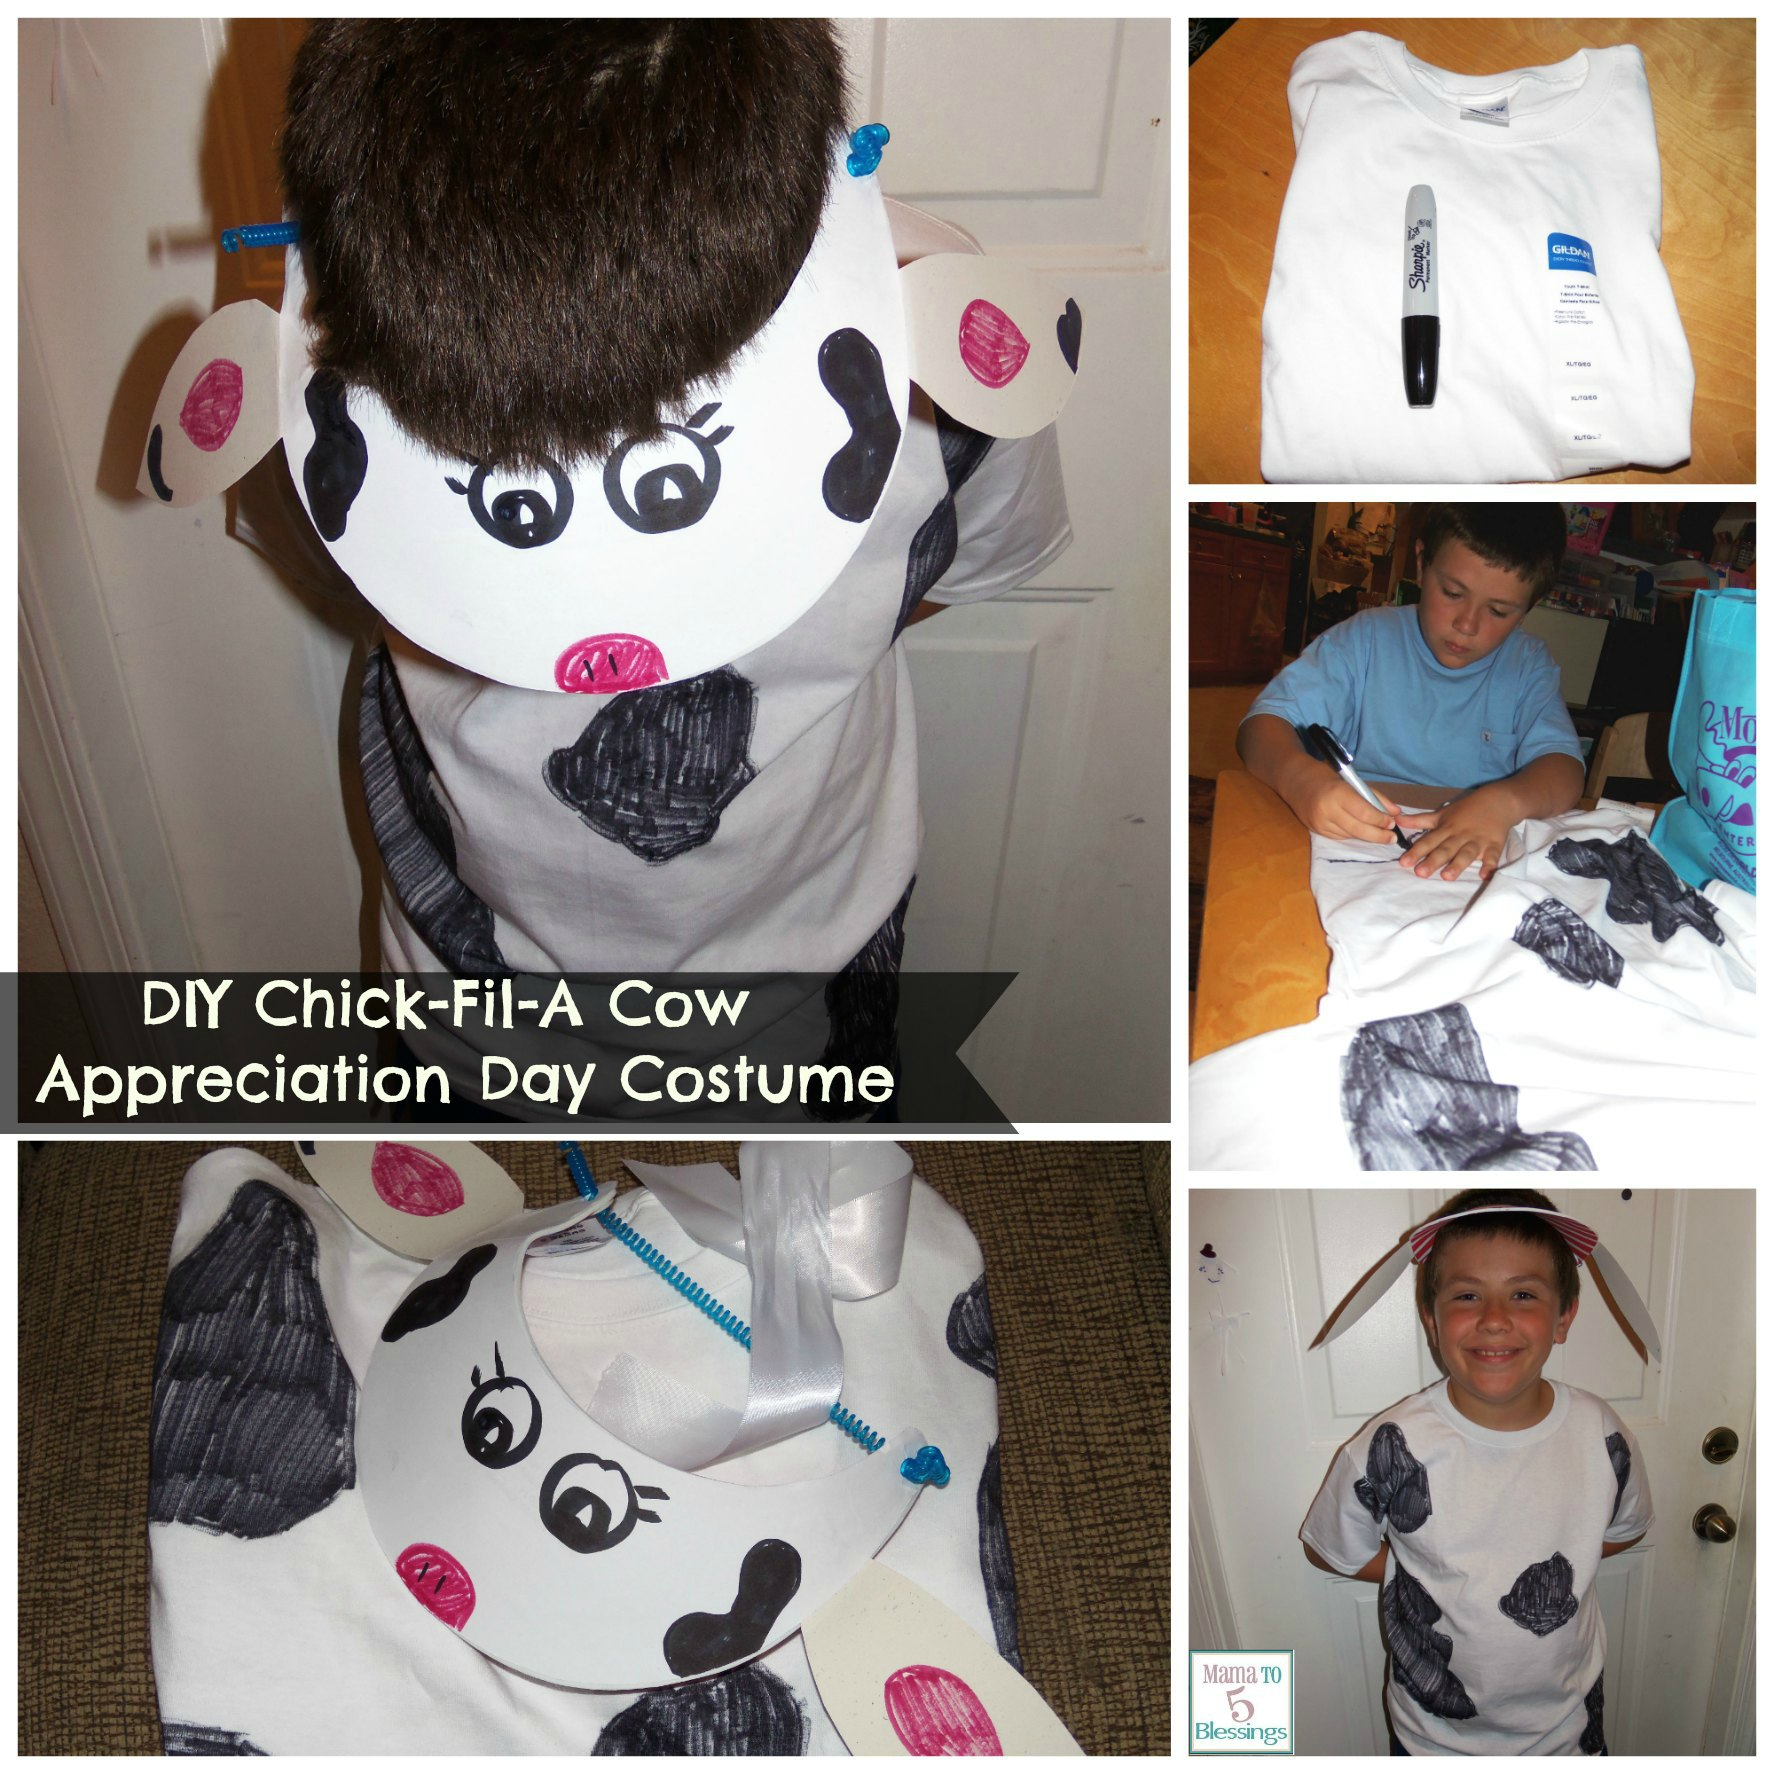 chick-fil-a costume collage use